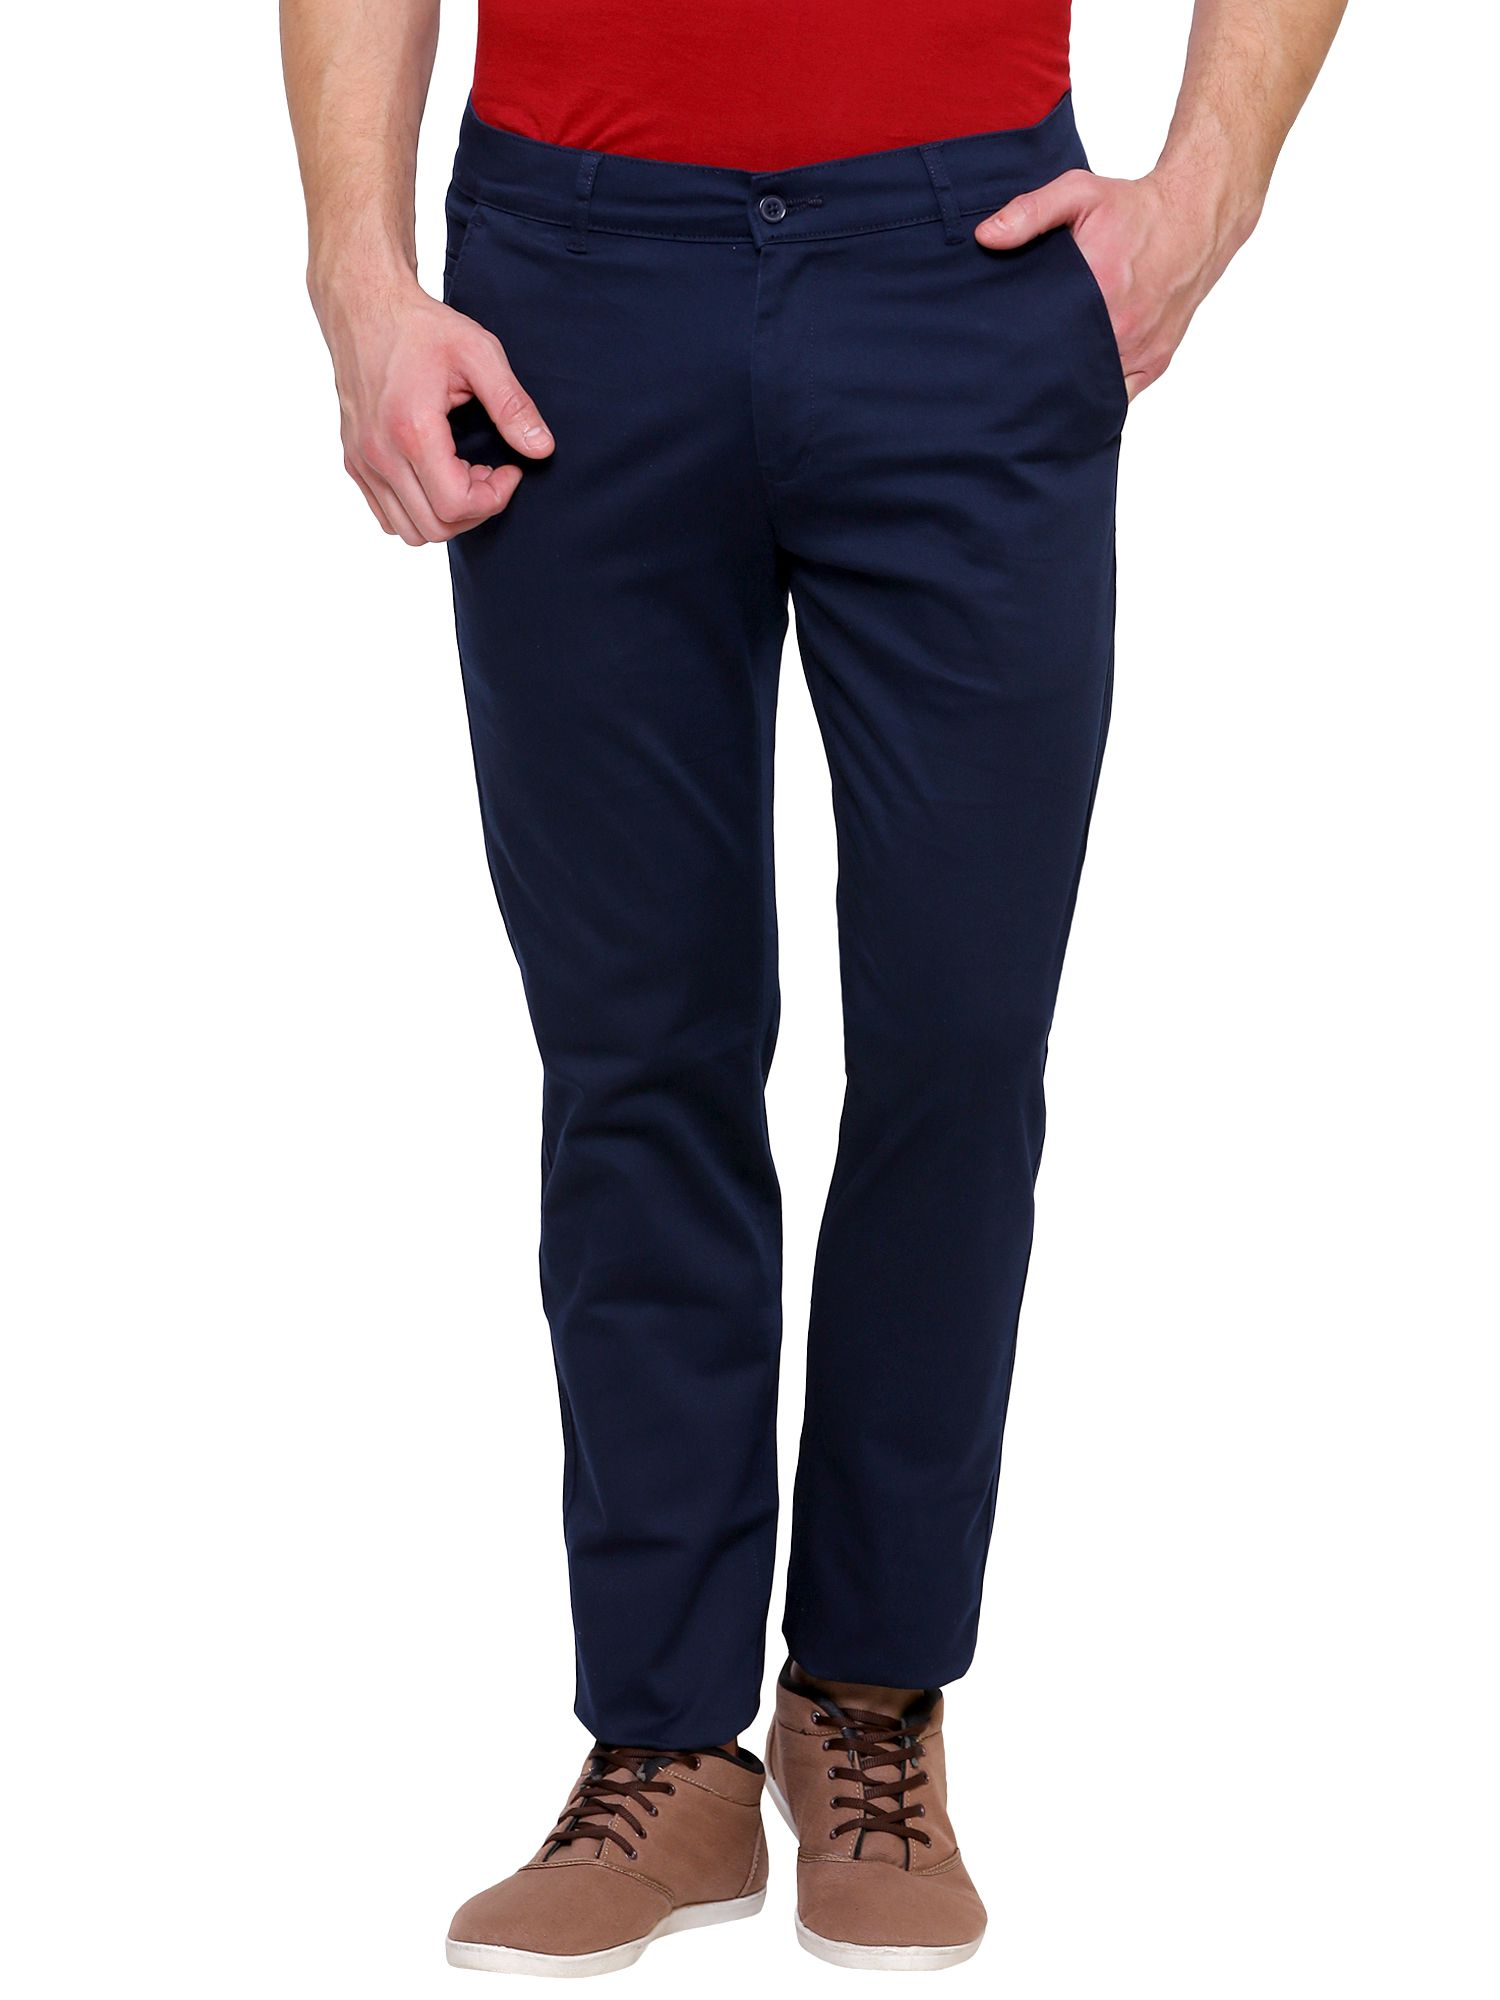 Inspire Clothing Inspiration Blue Slim -Fit Flat Chinos